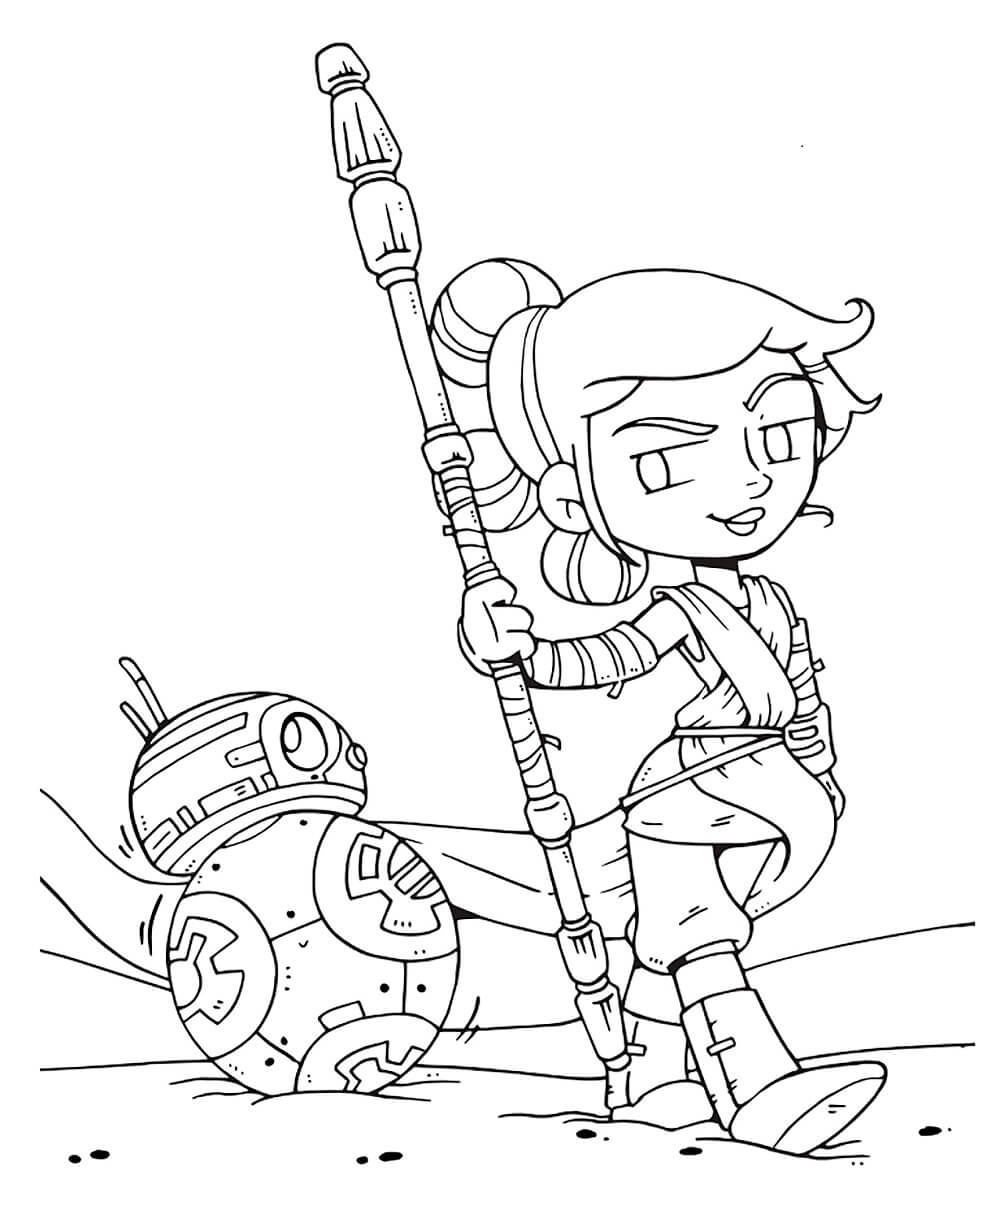 star wars free coloring pages 50 top star wars coloring pages online free free star coloring wars pages